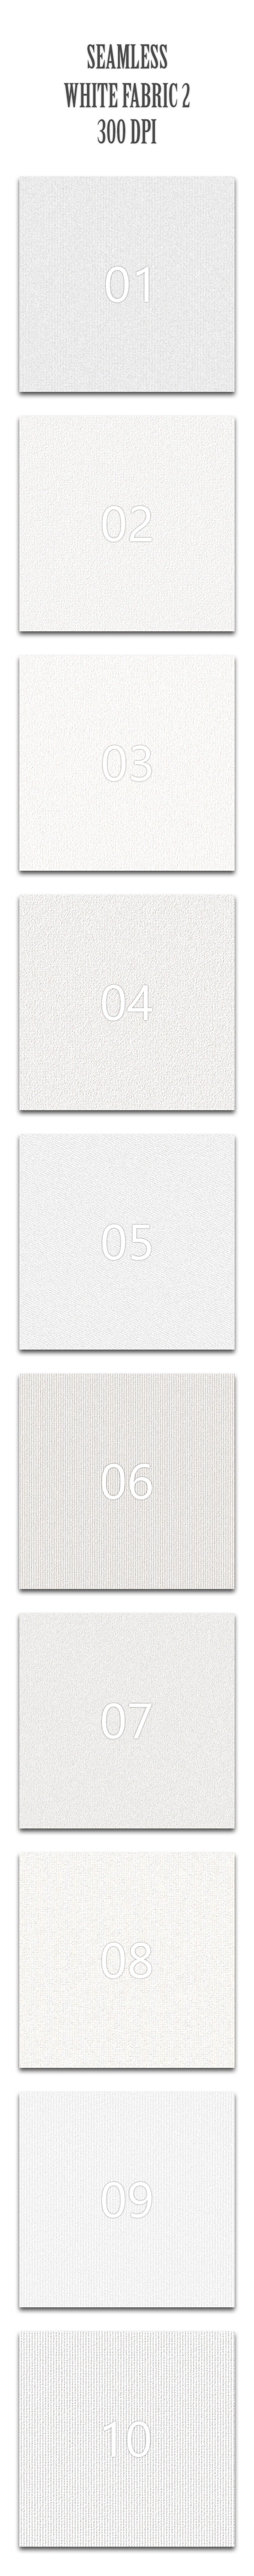 Seamless White Fabric 2 - Textures / Fills / Patterns Photoshop